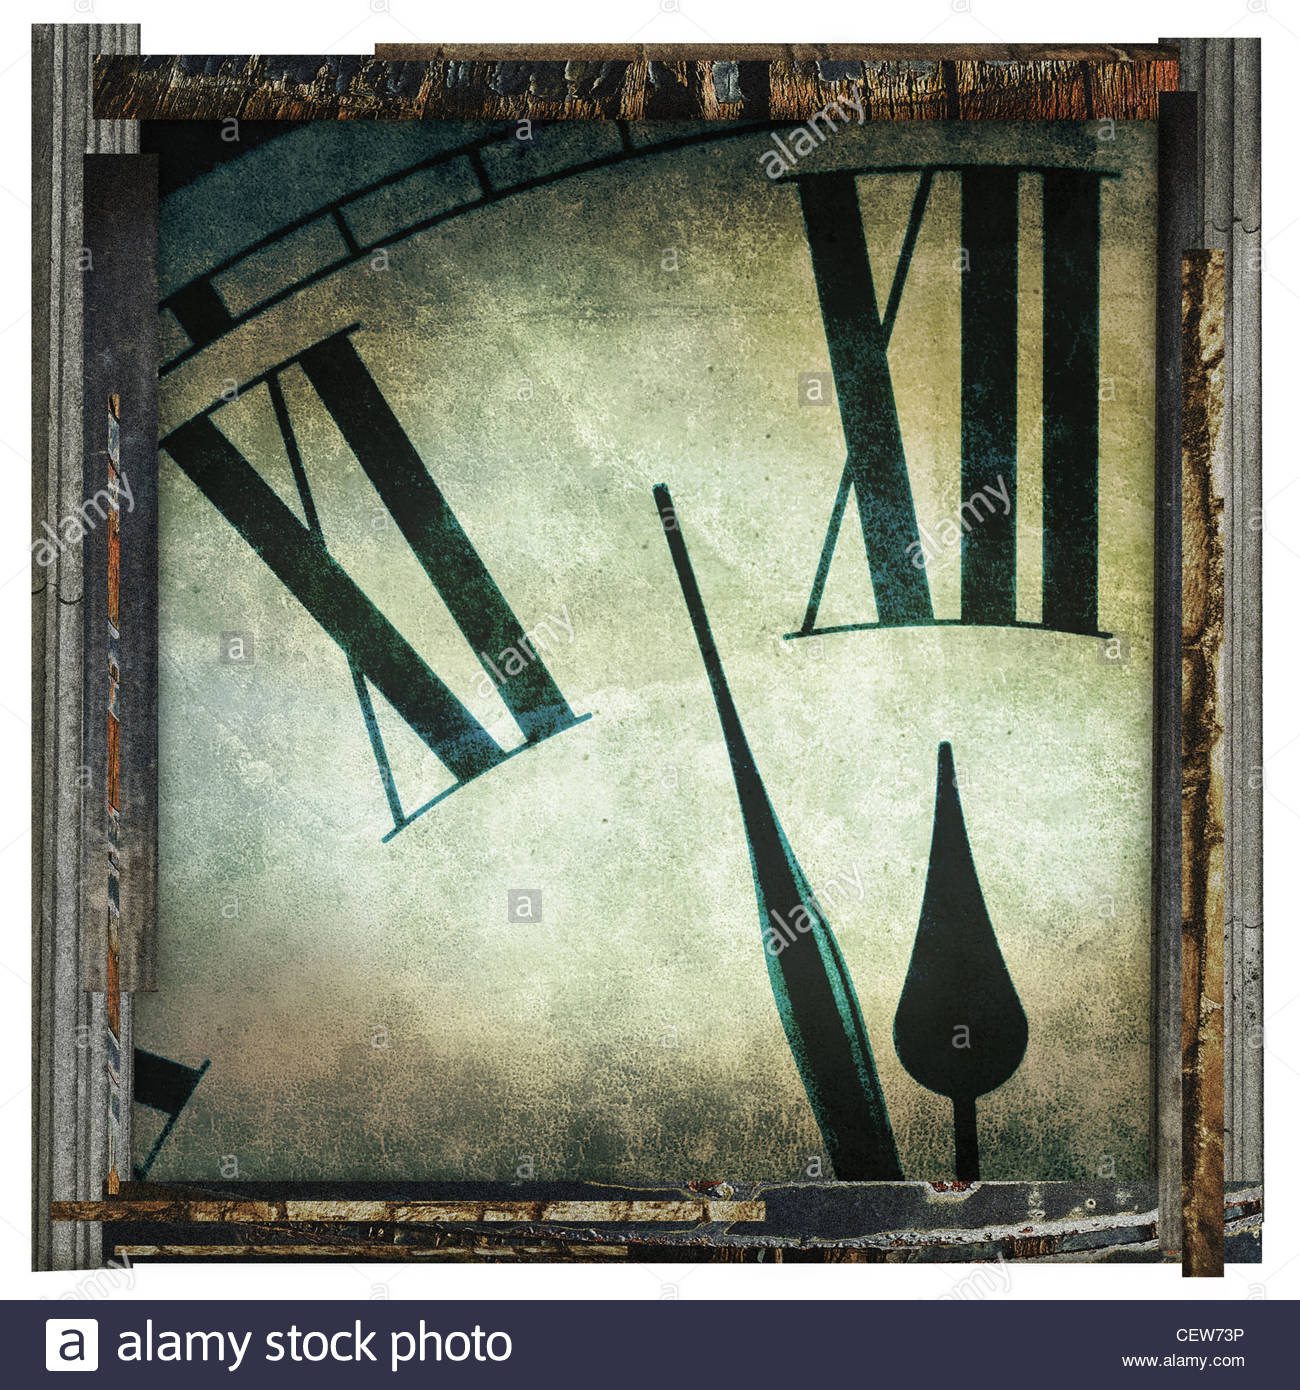 time fine art photography - Stock Image